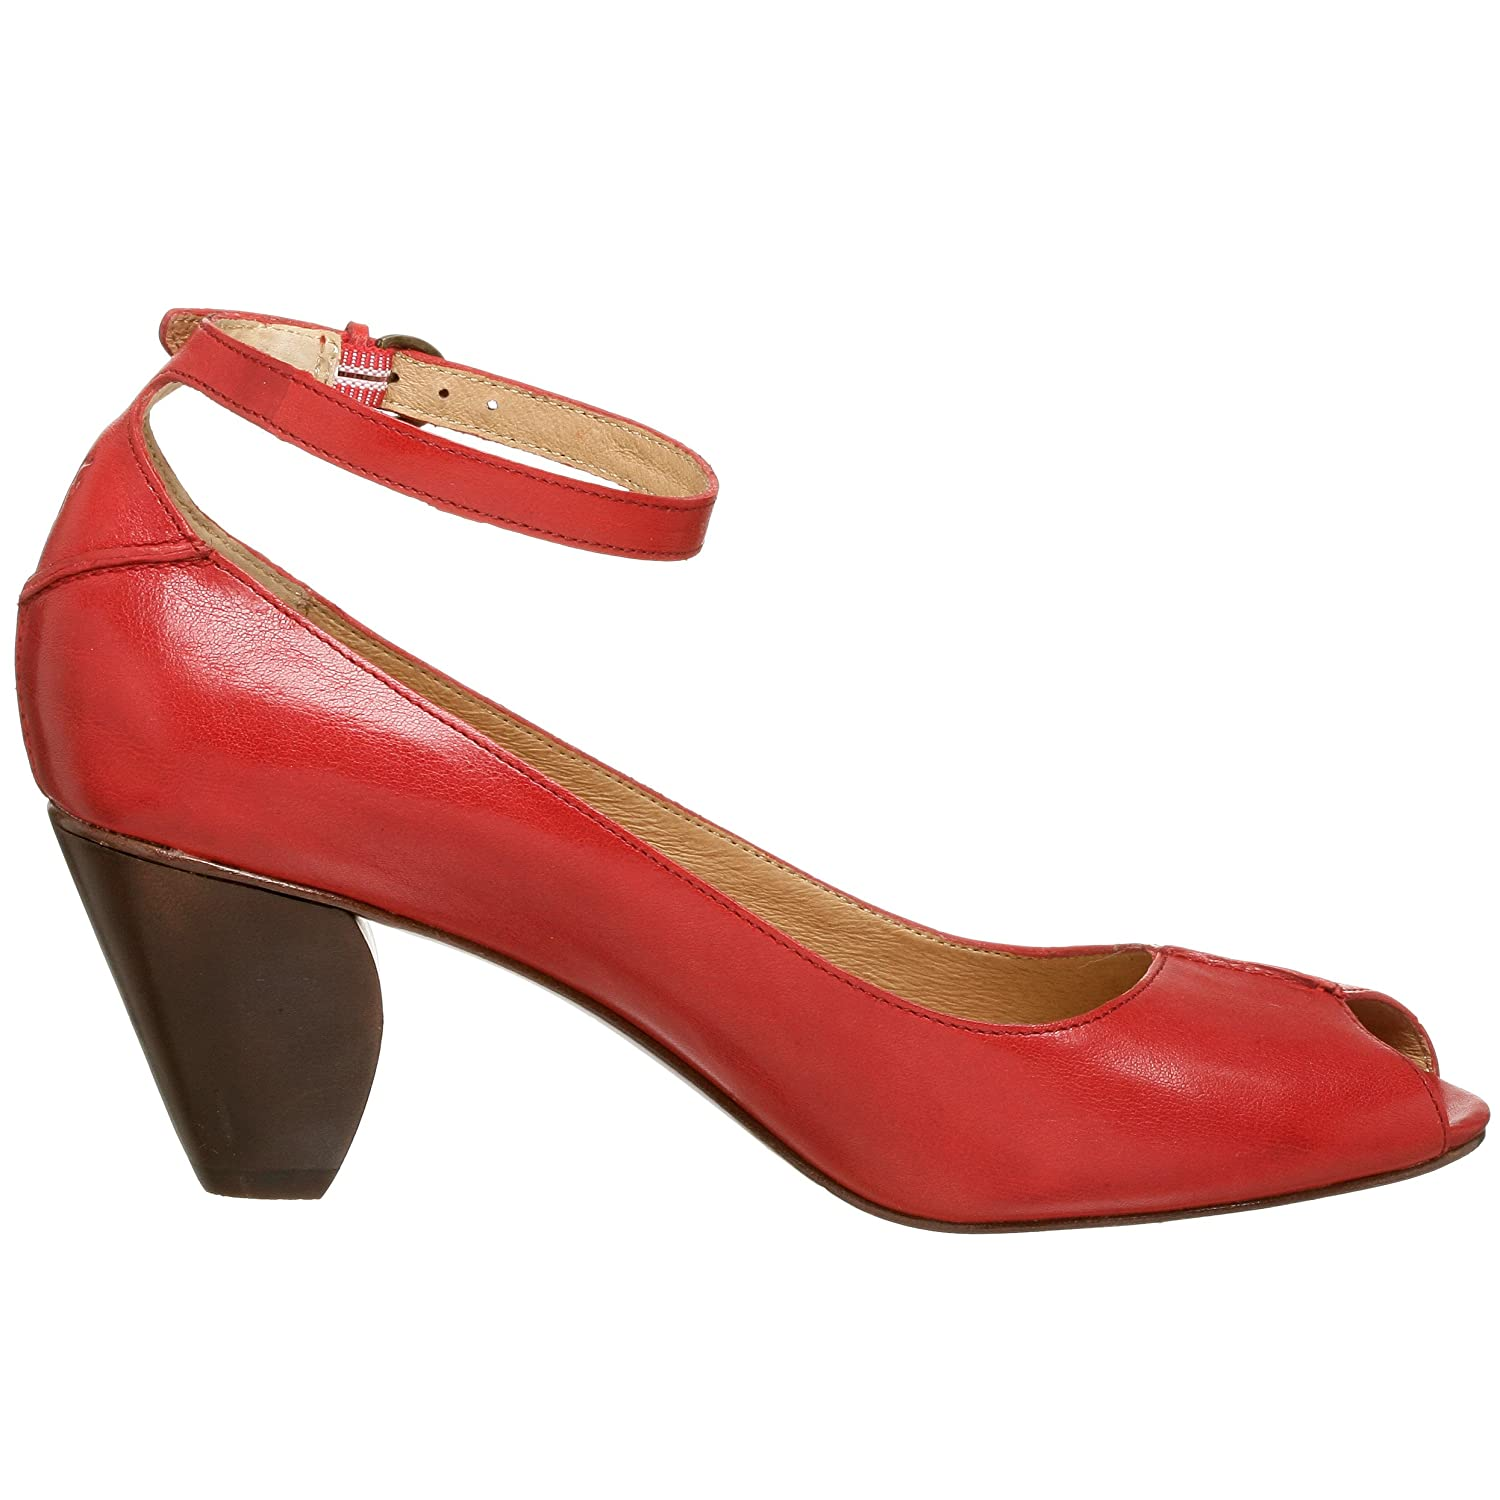 Frye Louise Pump - Free Overnight Shipping & Return Shipping: Endless.com :  leather retro heels ankle strap